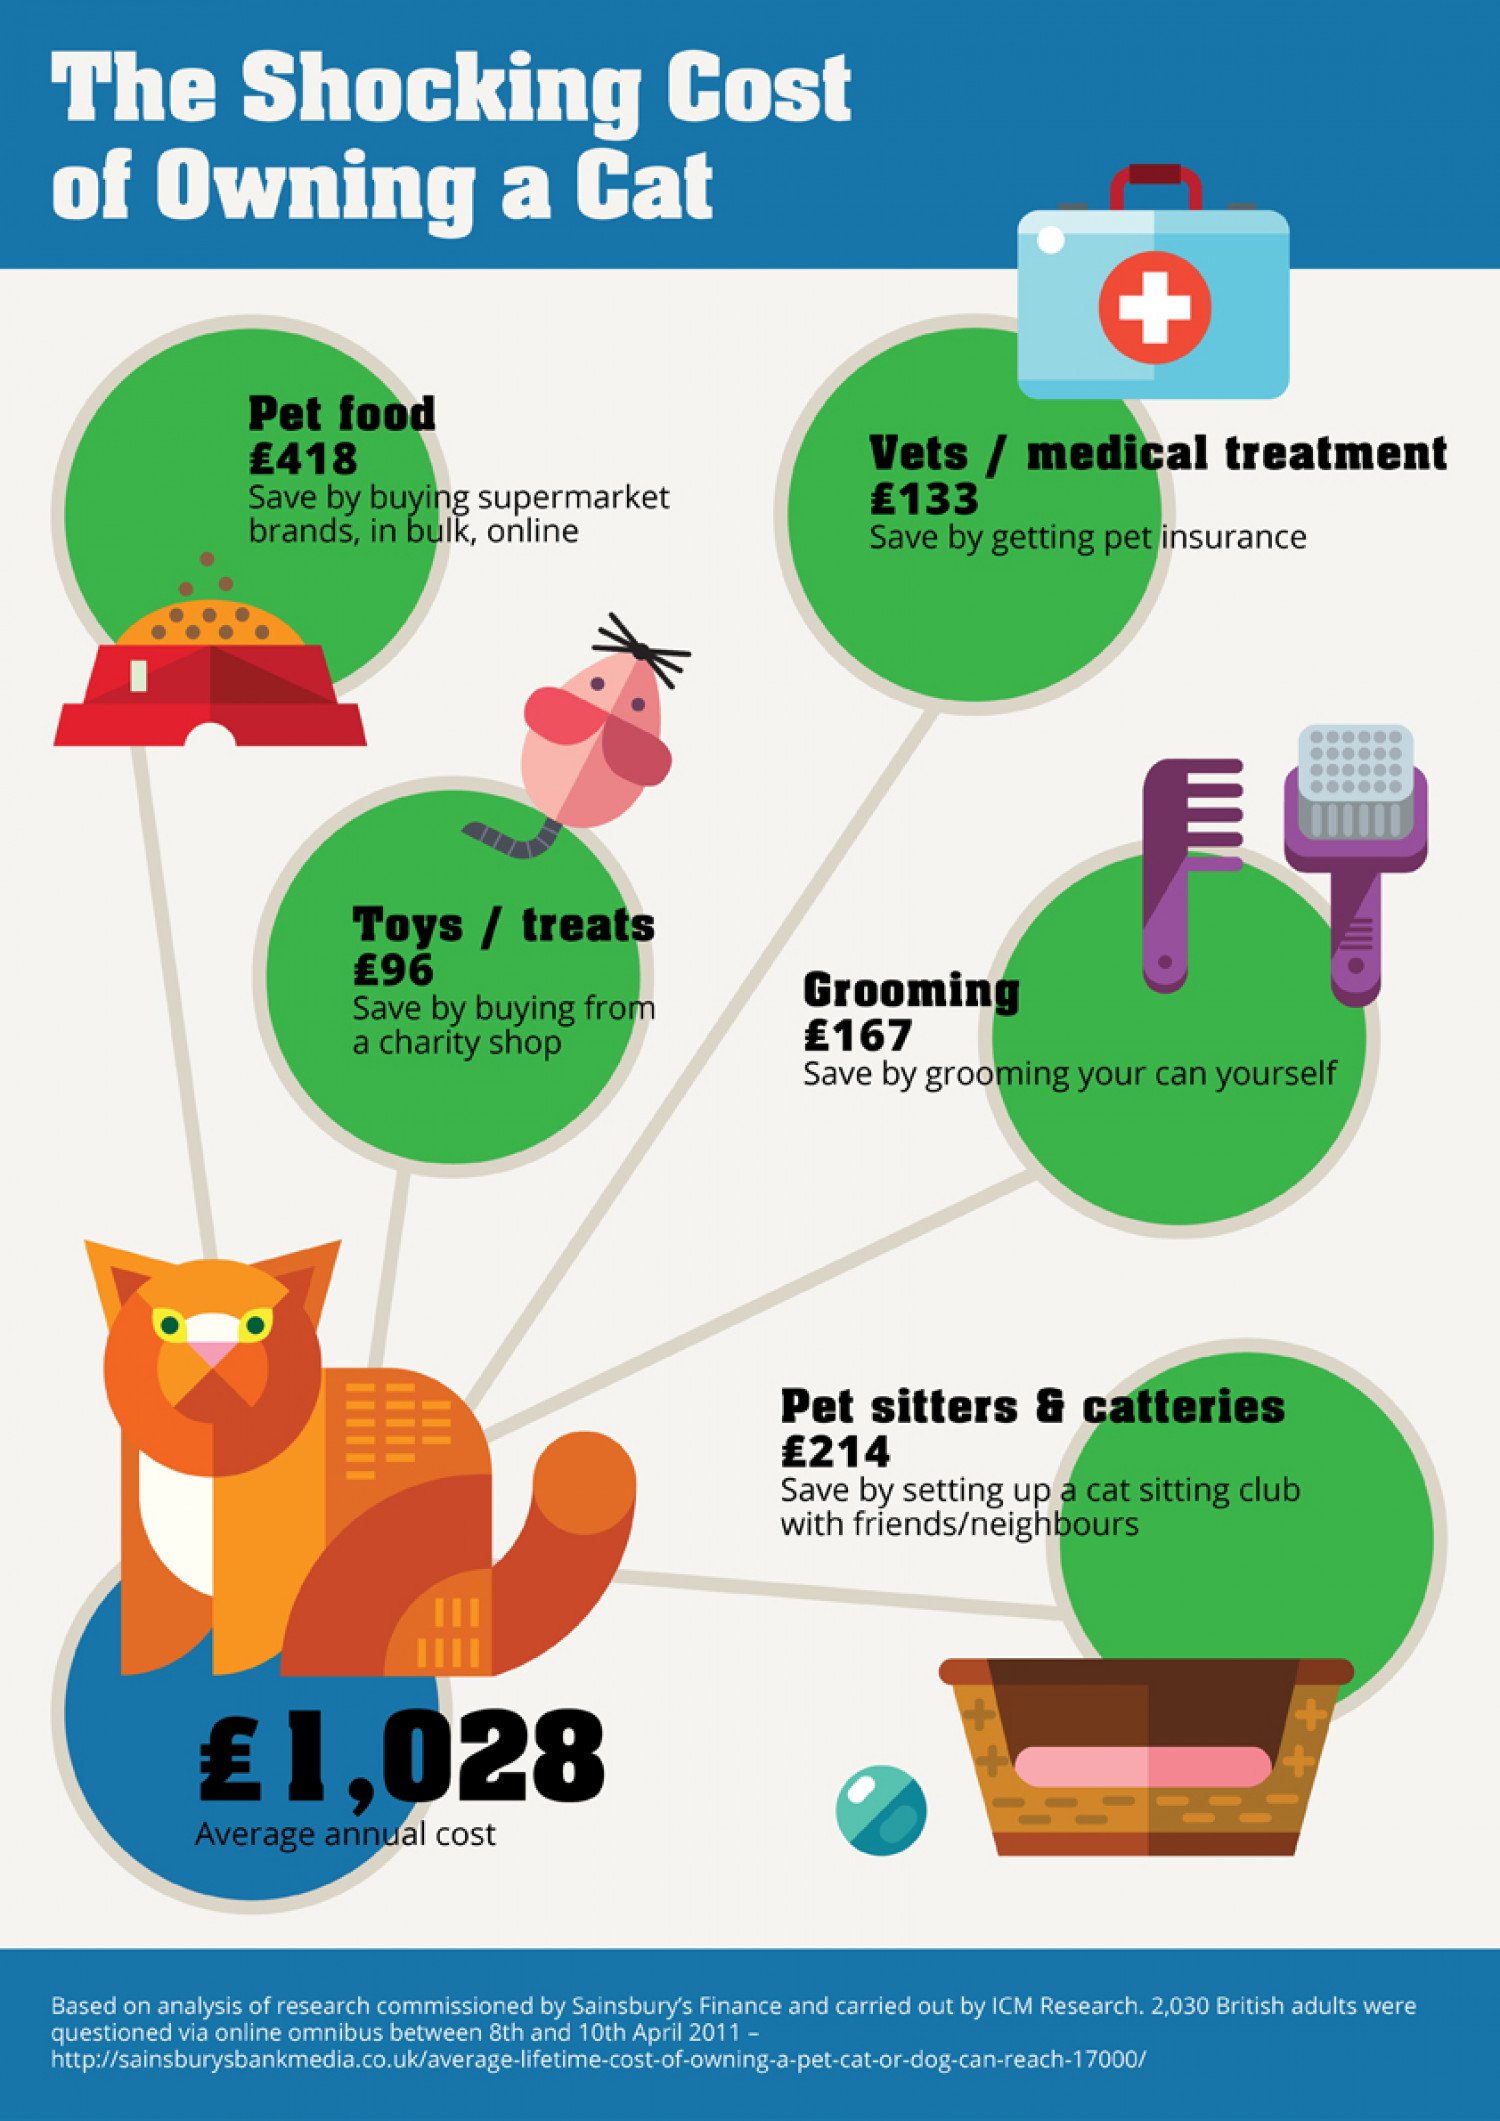 The Shocking Cost of Owning a Cat in the U.K. Infographic